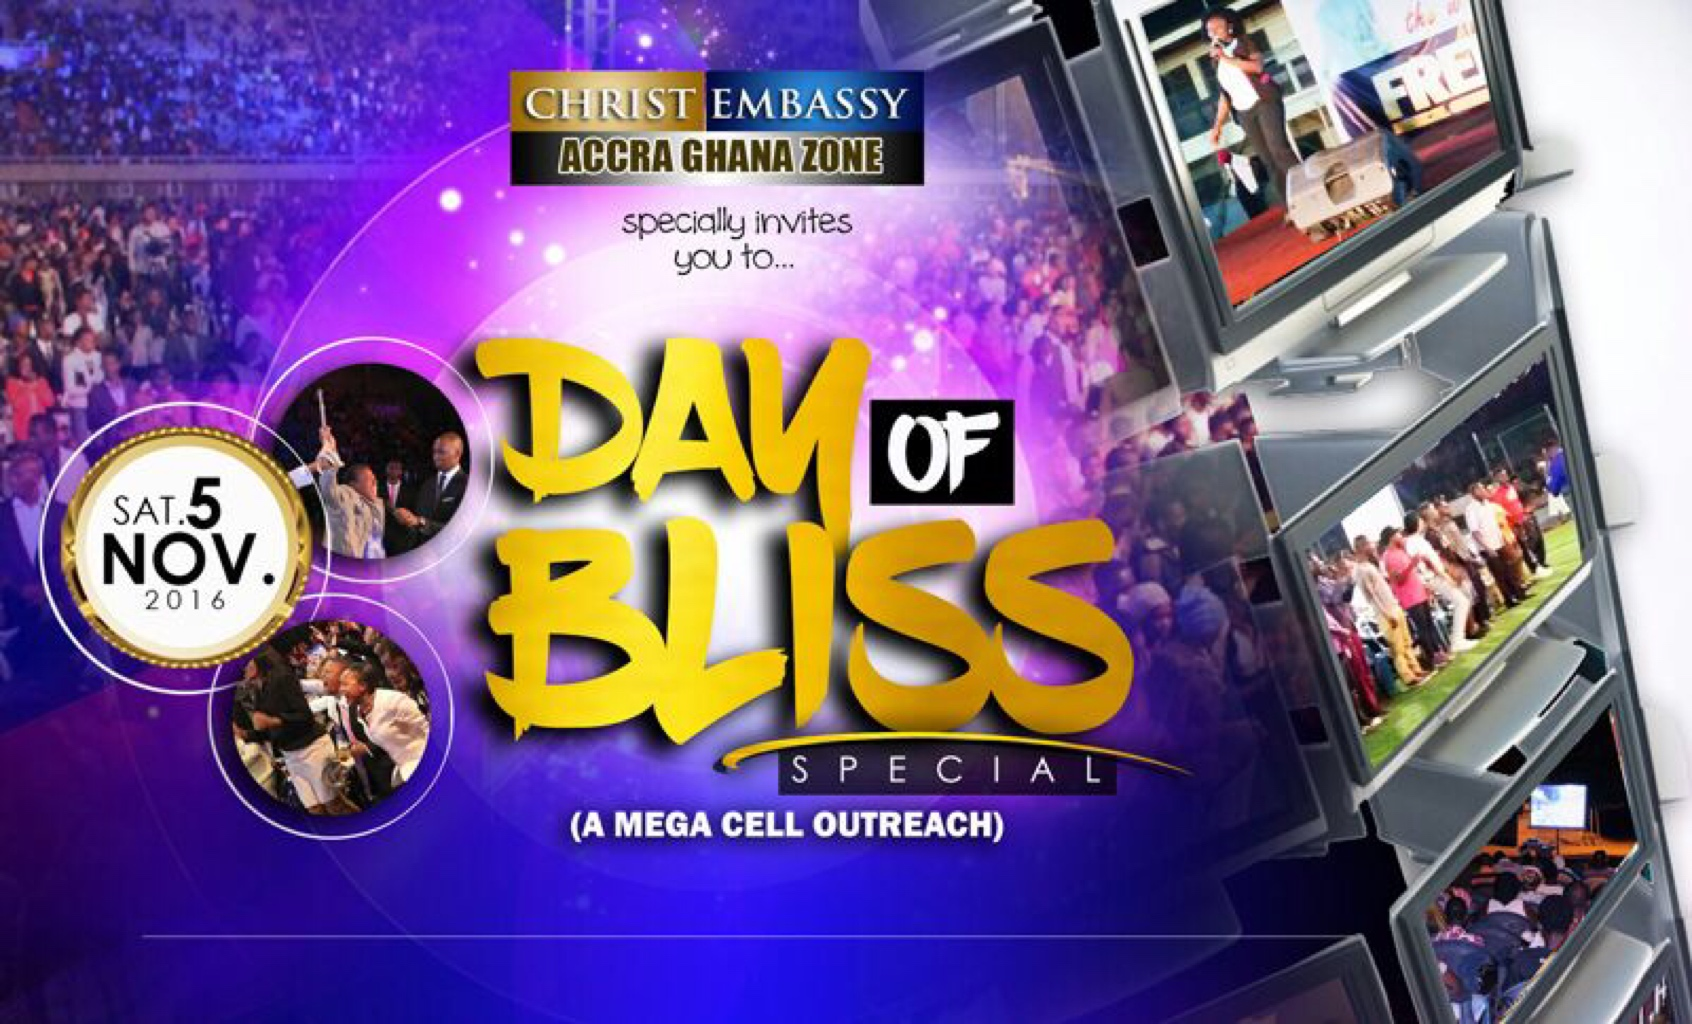 Day of Bliss Special is